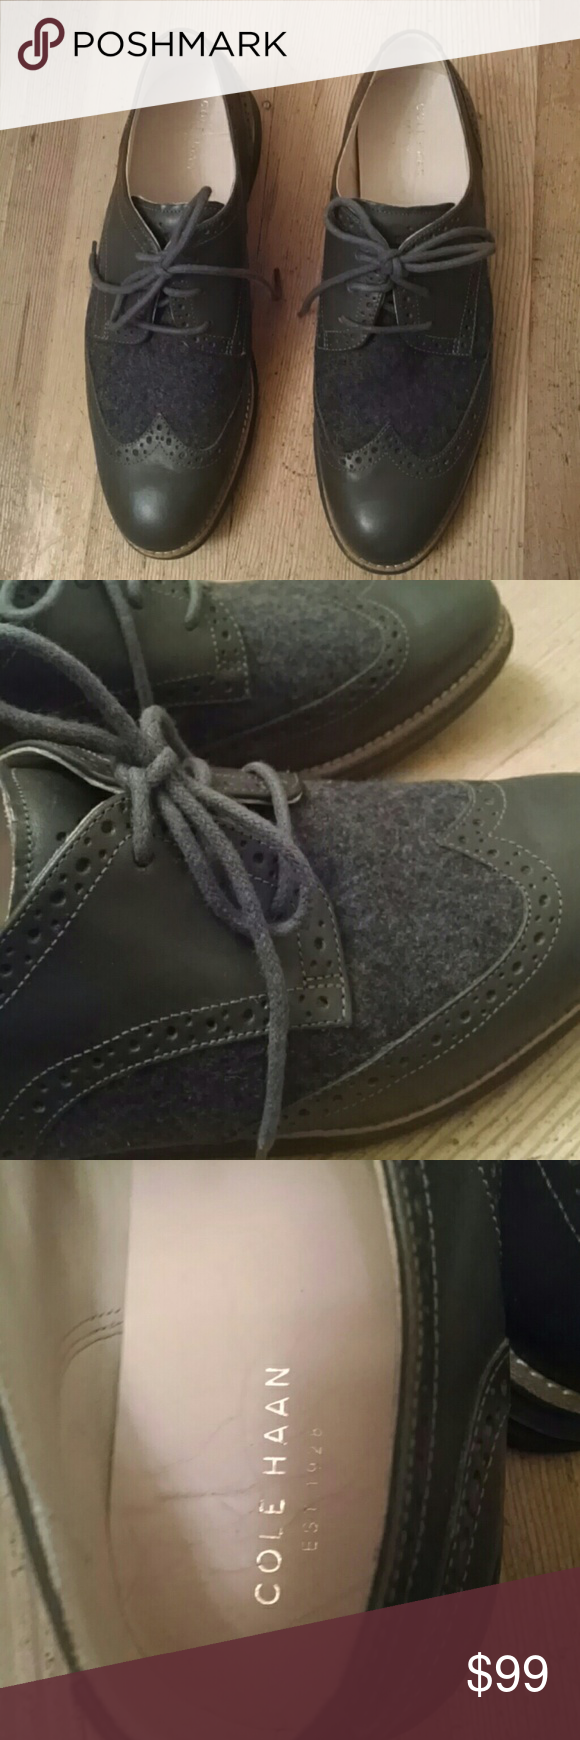 COLE HAAN Wool & Leather Lunargrand Wingtip Oxford Magnet grey Lunargrands w/ leather toecap & quarter, and a WOOL vamp. Gorgeous, great condition, very clean!    These have only been worn a few times.  The insoles have some creasing (pic 3), the soles show minor soiling and almost no wear (pic 4). Otherwise, they look fantastic!  These are women's shoes, size 9.5 B . They fit very comfortably, but not recommended for wide feet.  Thanks for looking!  Please check out my other items that PM…